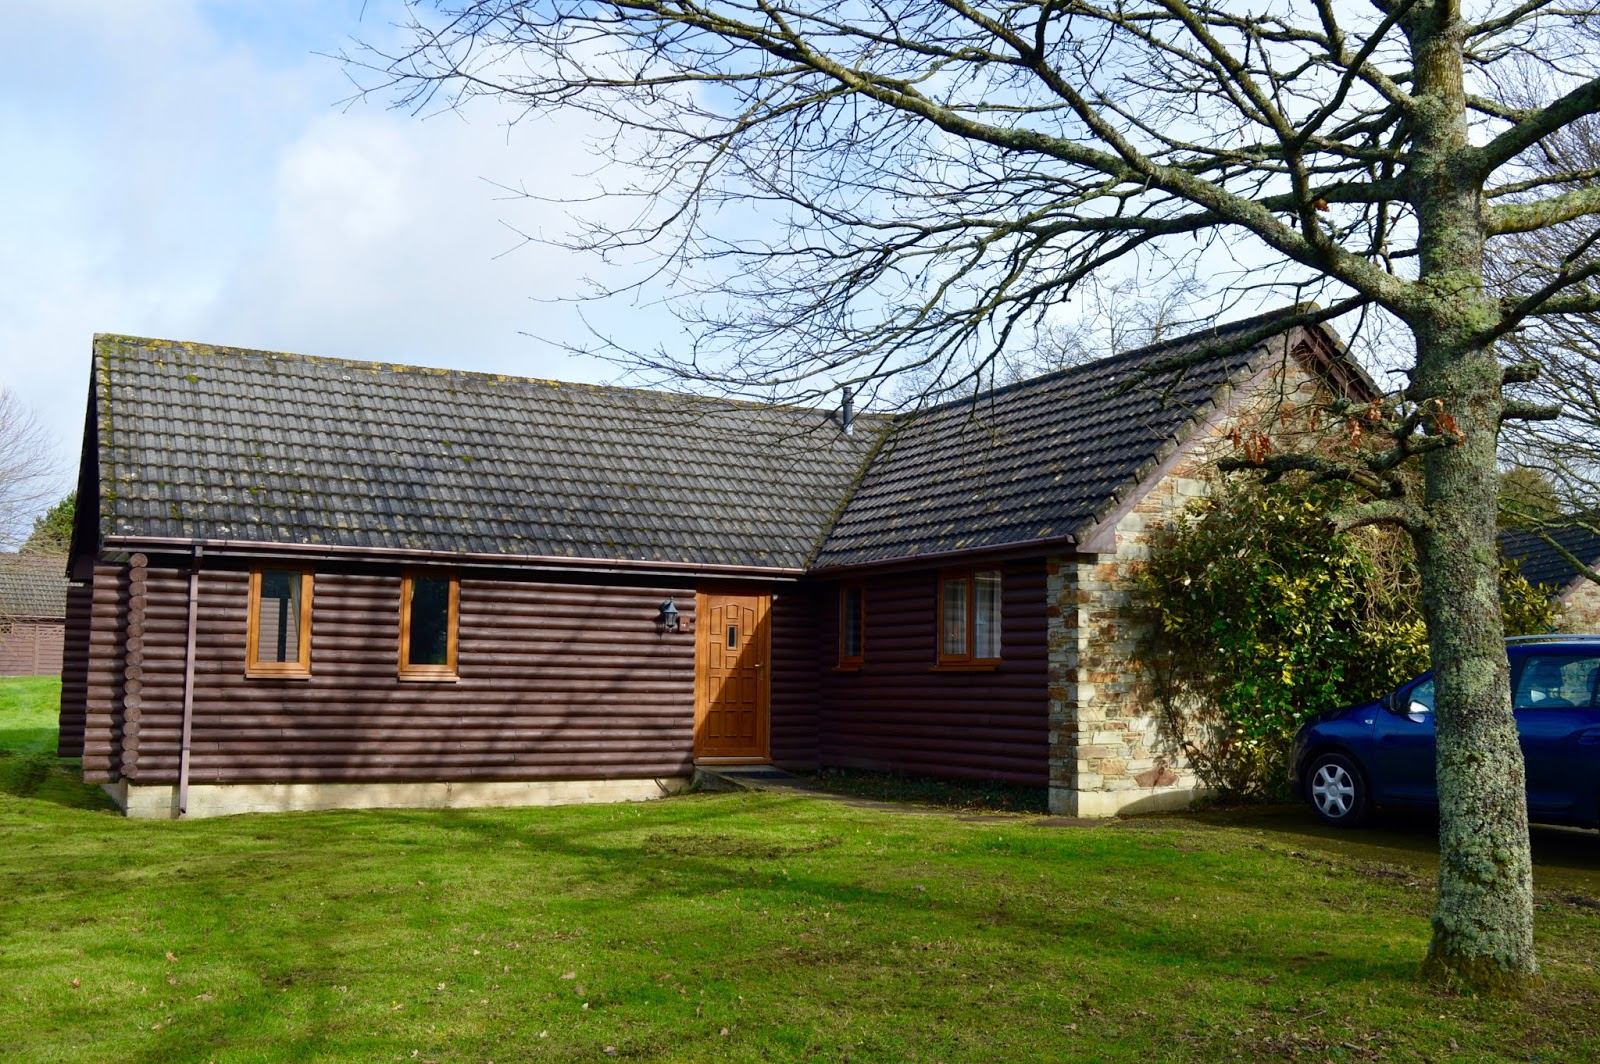 Waterside Cornwall Review | Self-Catering Lodges Near The Eden Project - 3 bed lodge exterior